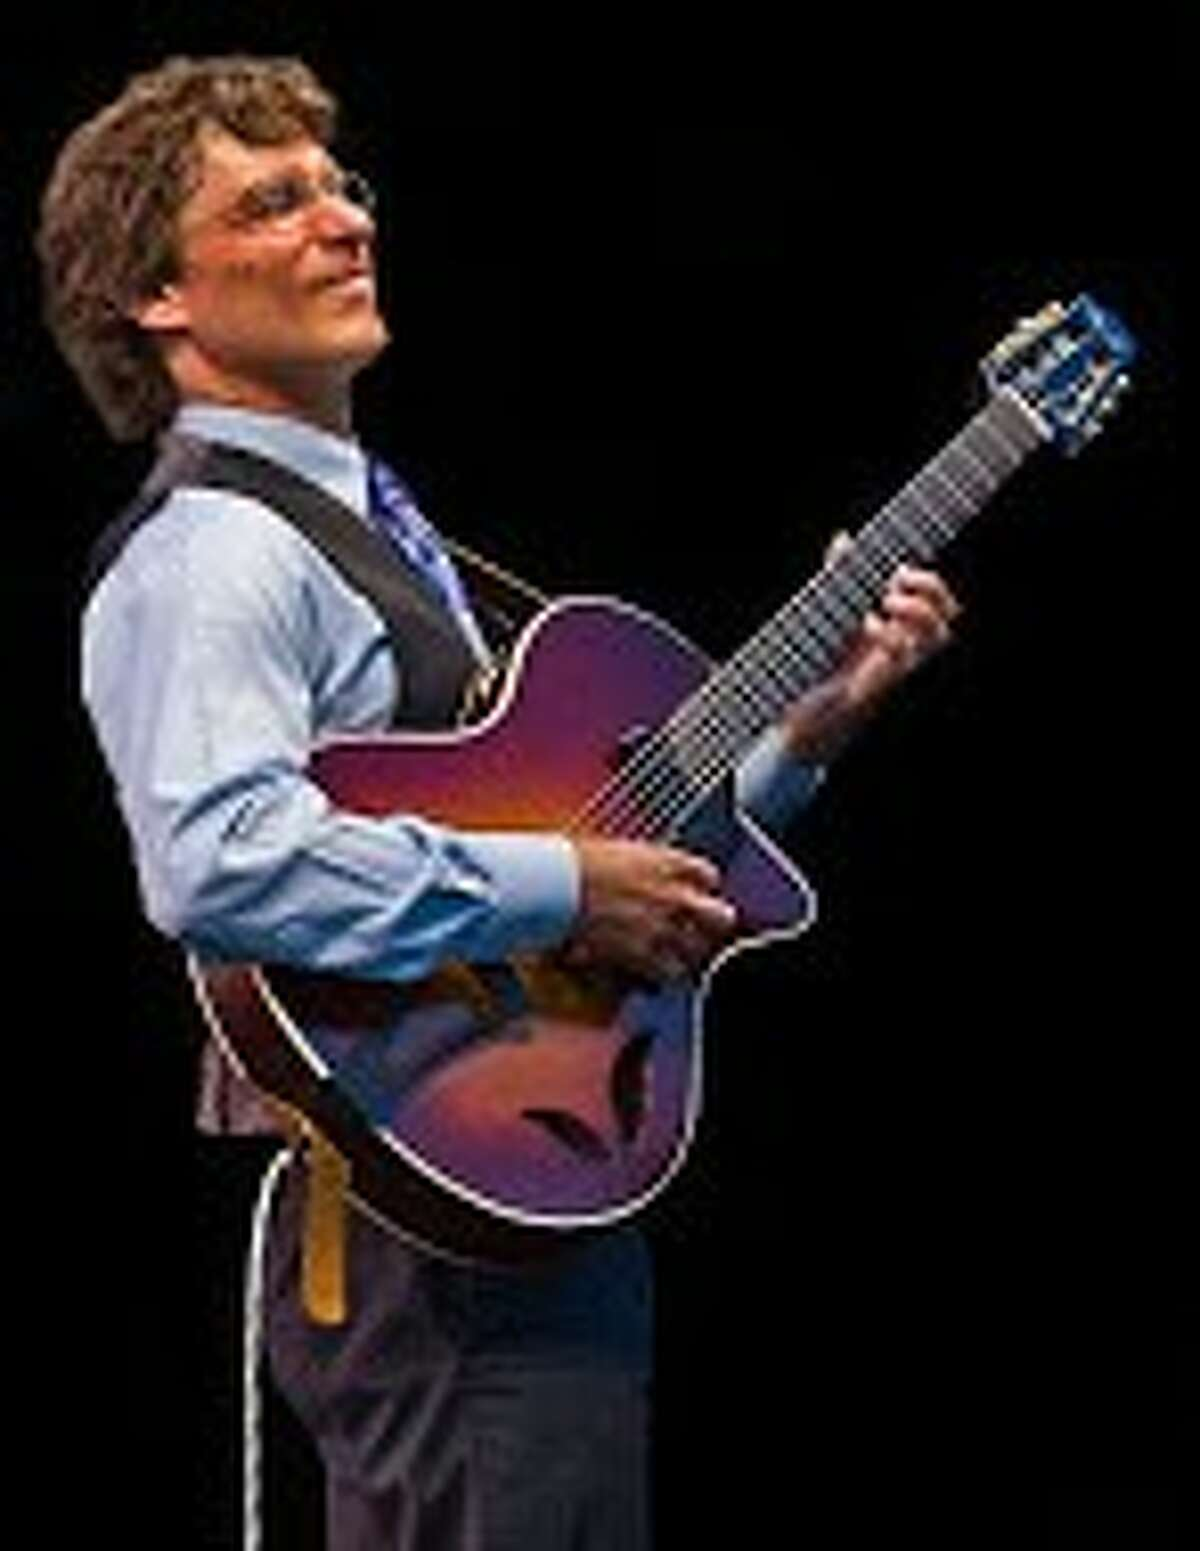 Acoustic guitarist Frank Vignola, will perform as part of West Shore Community College's Performing Arts Series at 7:30 p.m. on Nov. 21in the Center Stage Theater.